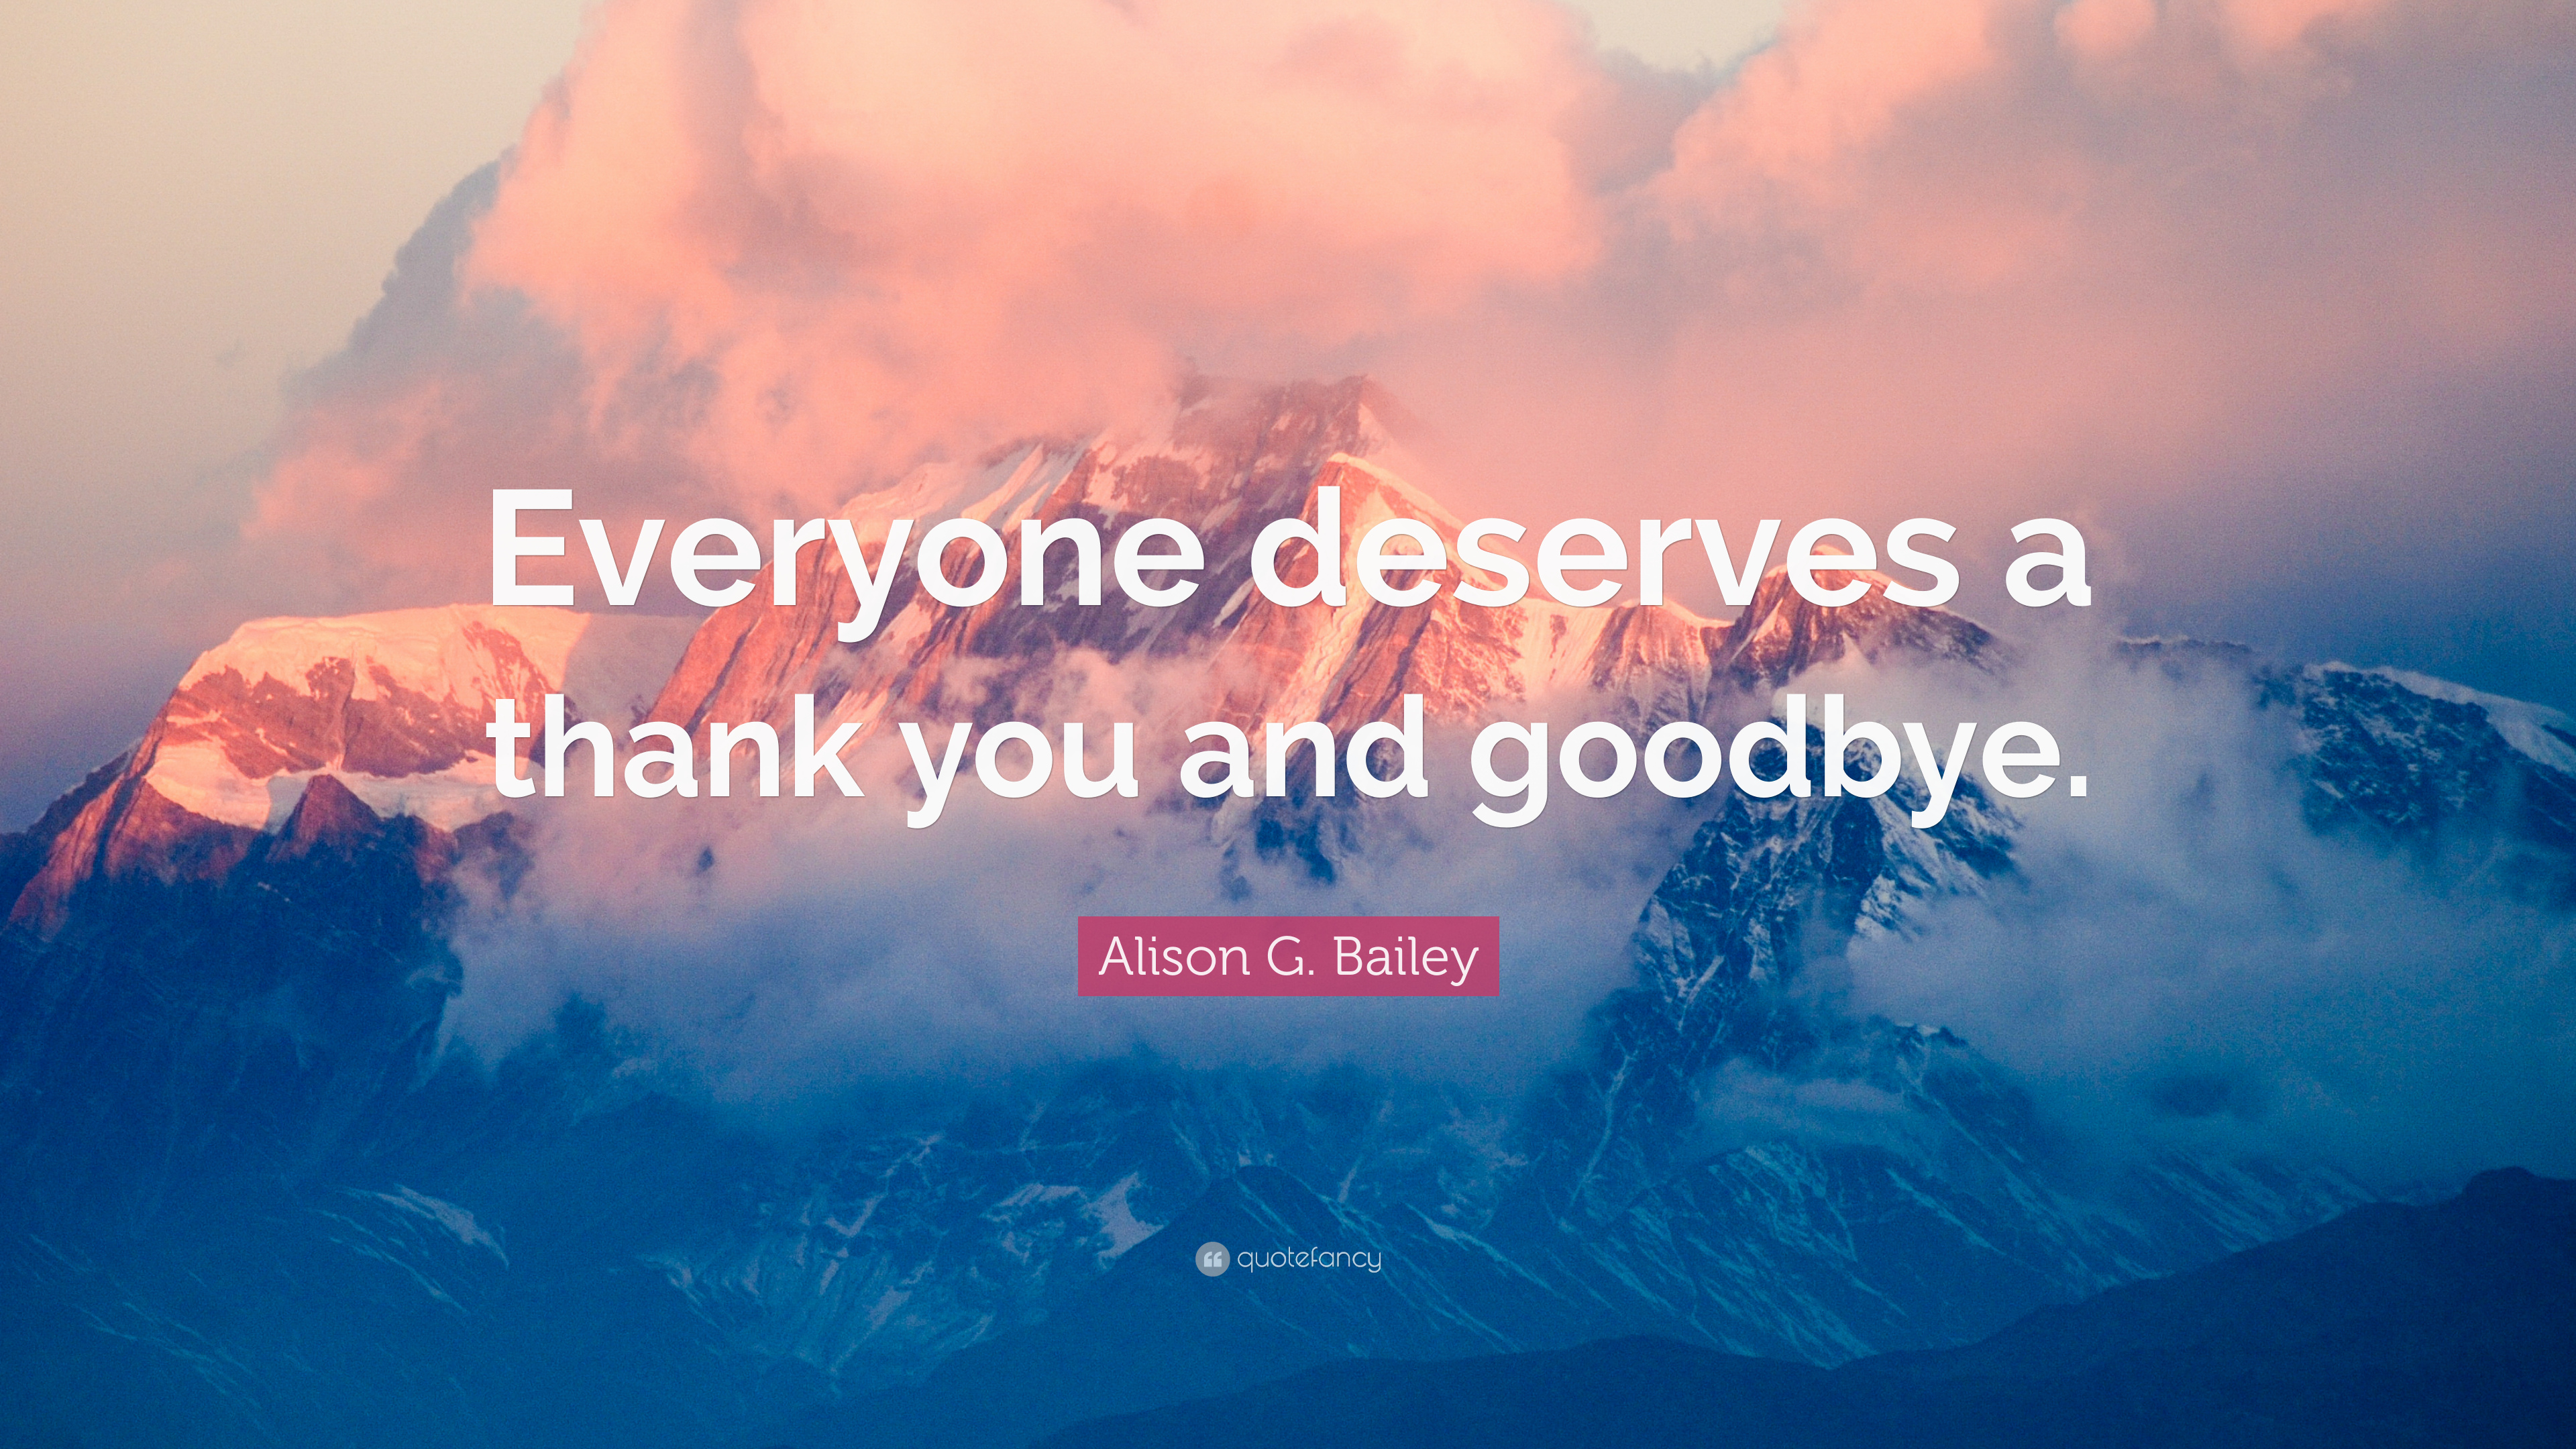 Alison G. Bailey Quote: Everyone deserves a thank you and